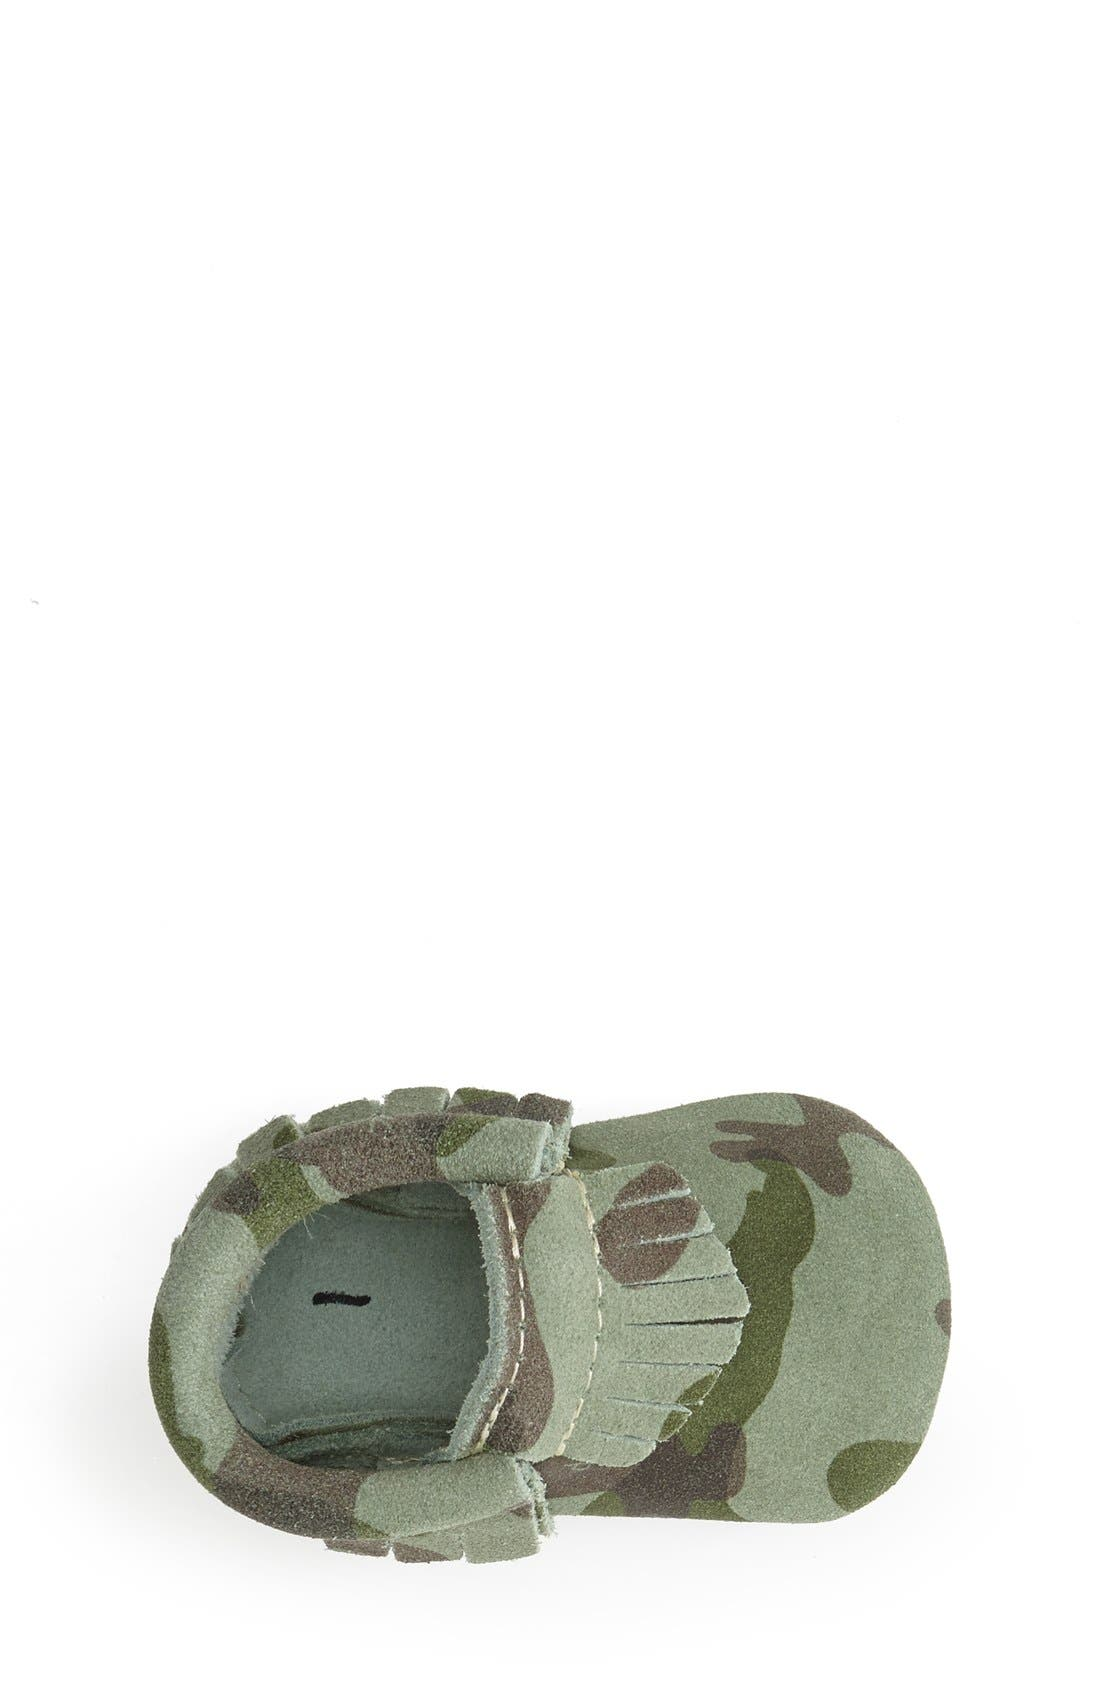 Alternate Image 3  - Freshly Picked Camo Print Suede Moccasin (Baby & Walker)